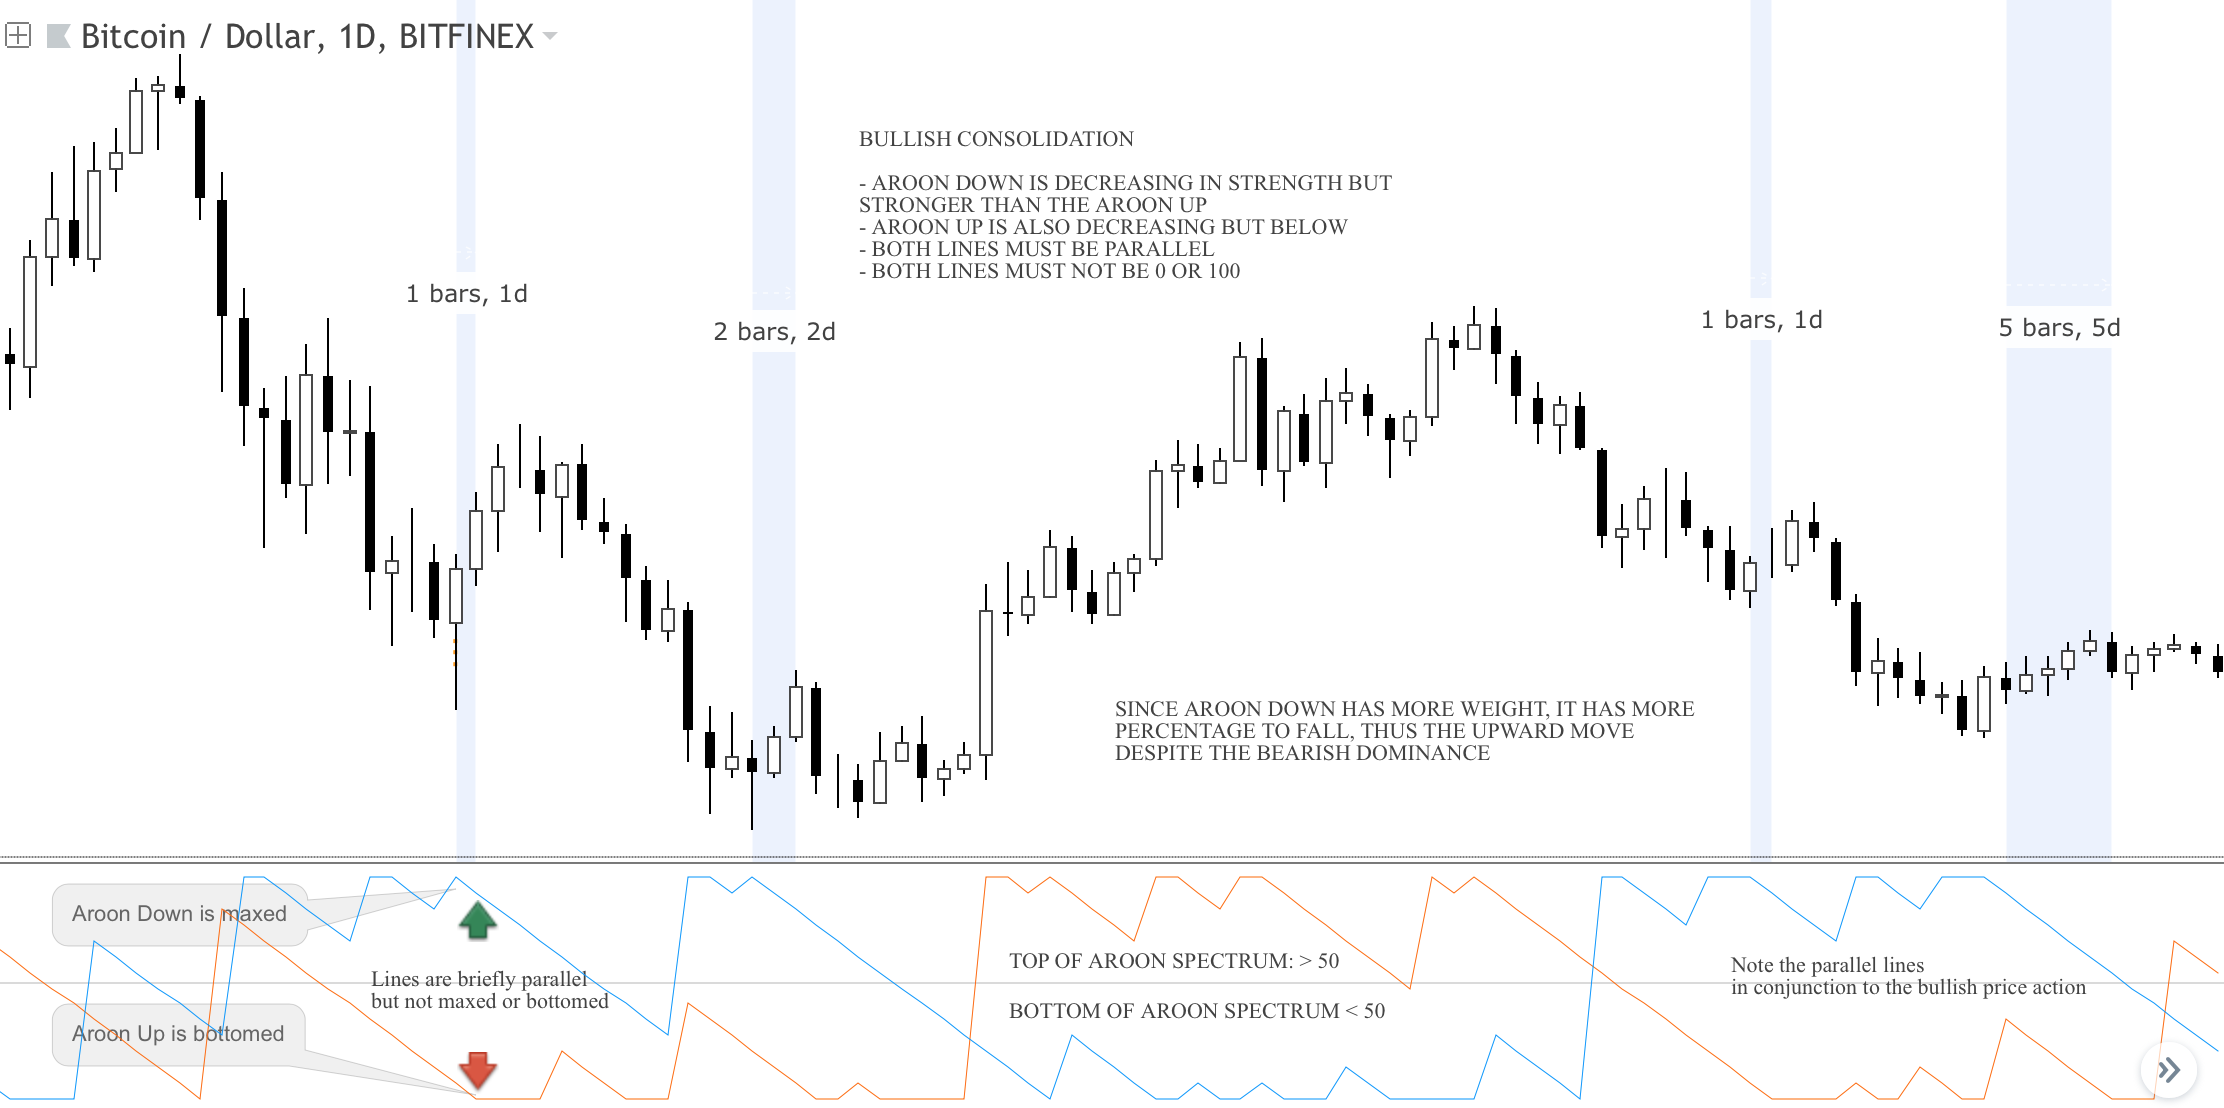 Technical Analysis Using the Aroon Indicator - Good Audience